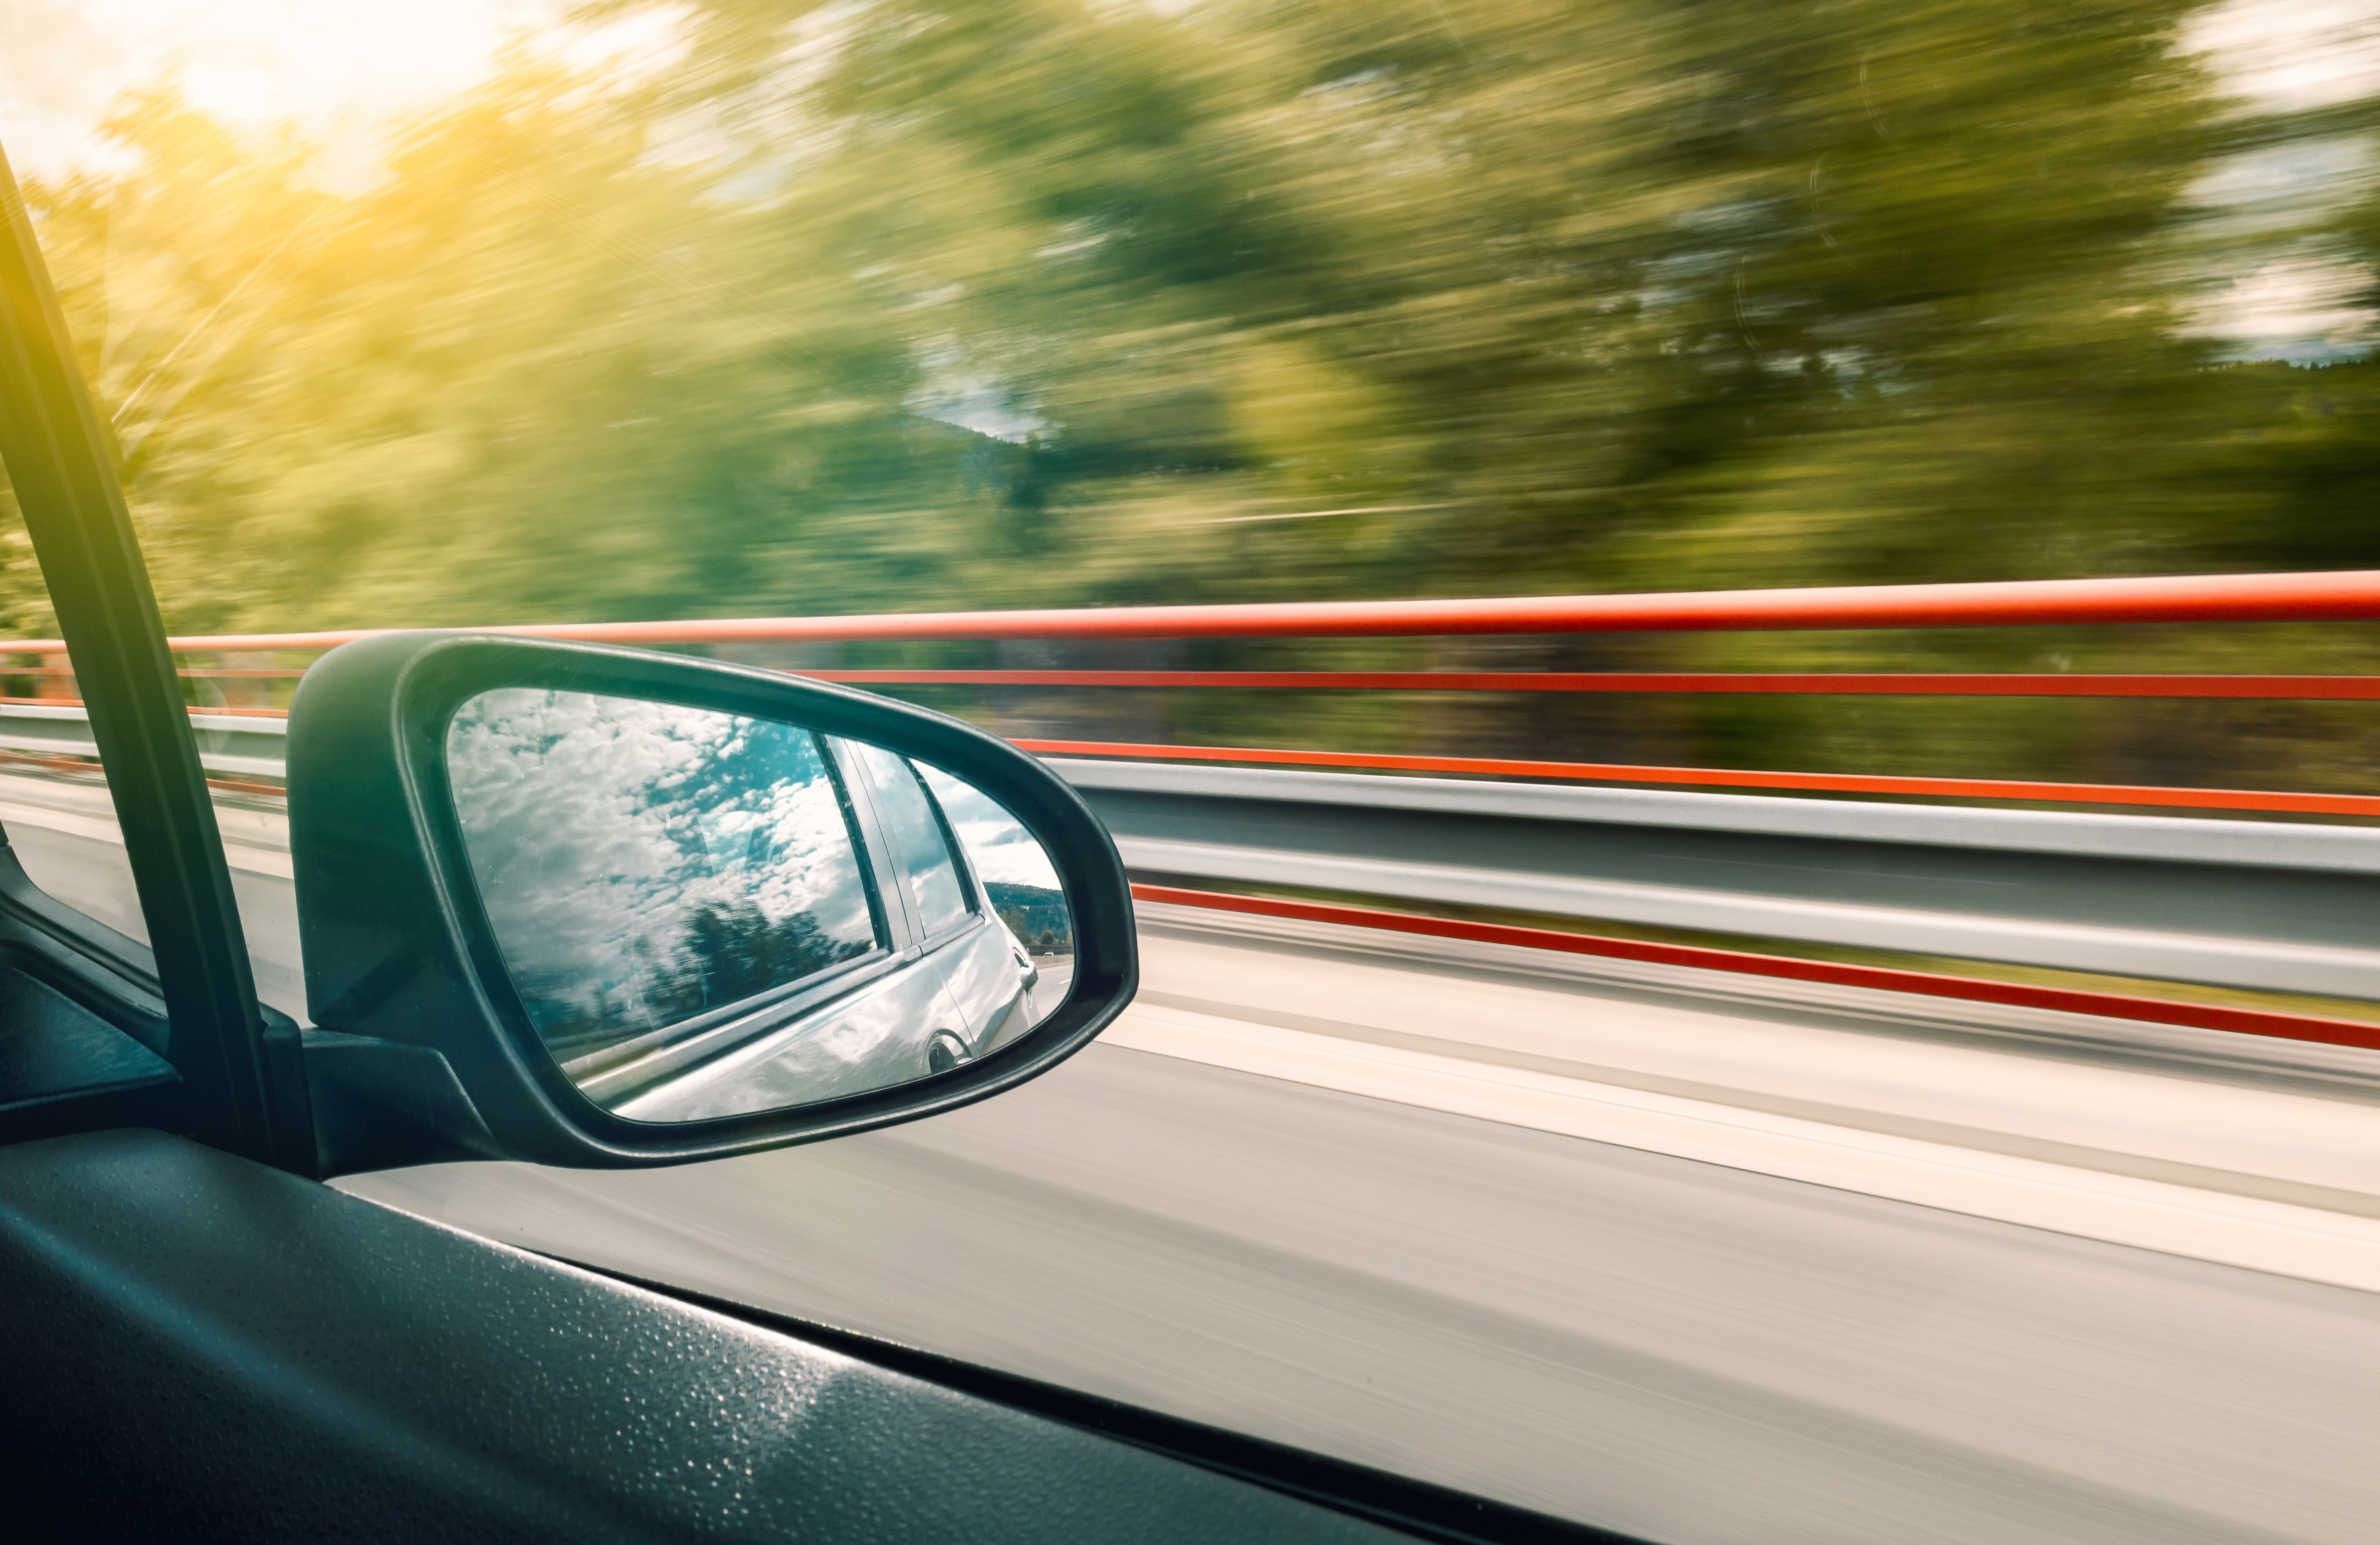 Photo of a car side-view mirror on motorway